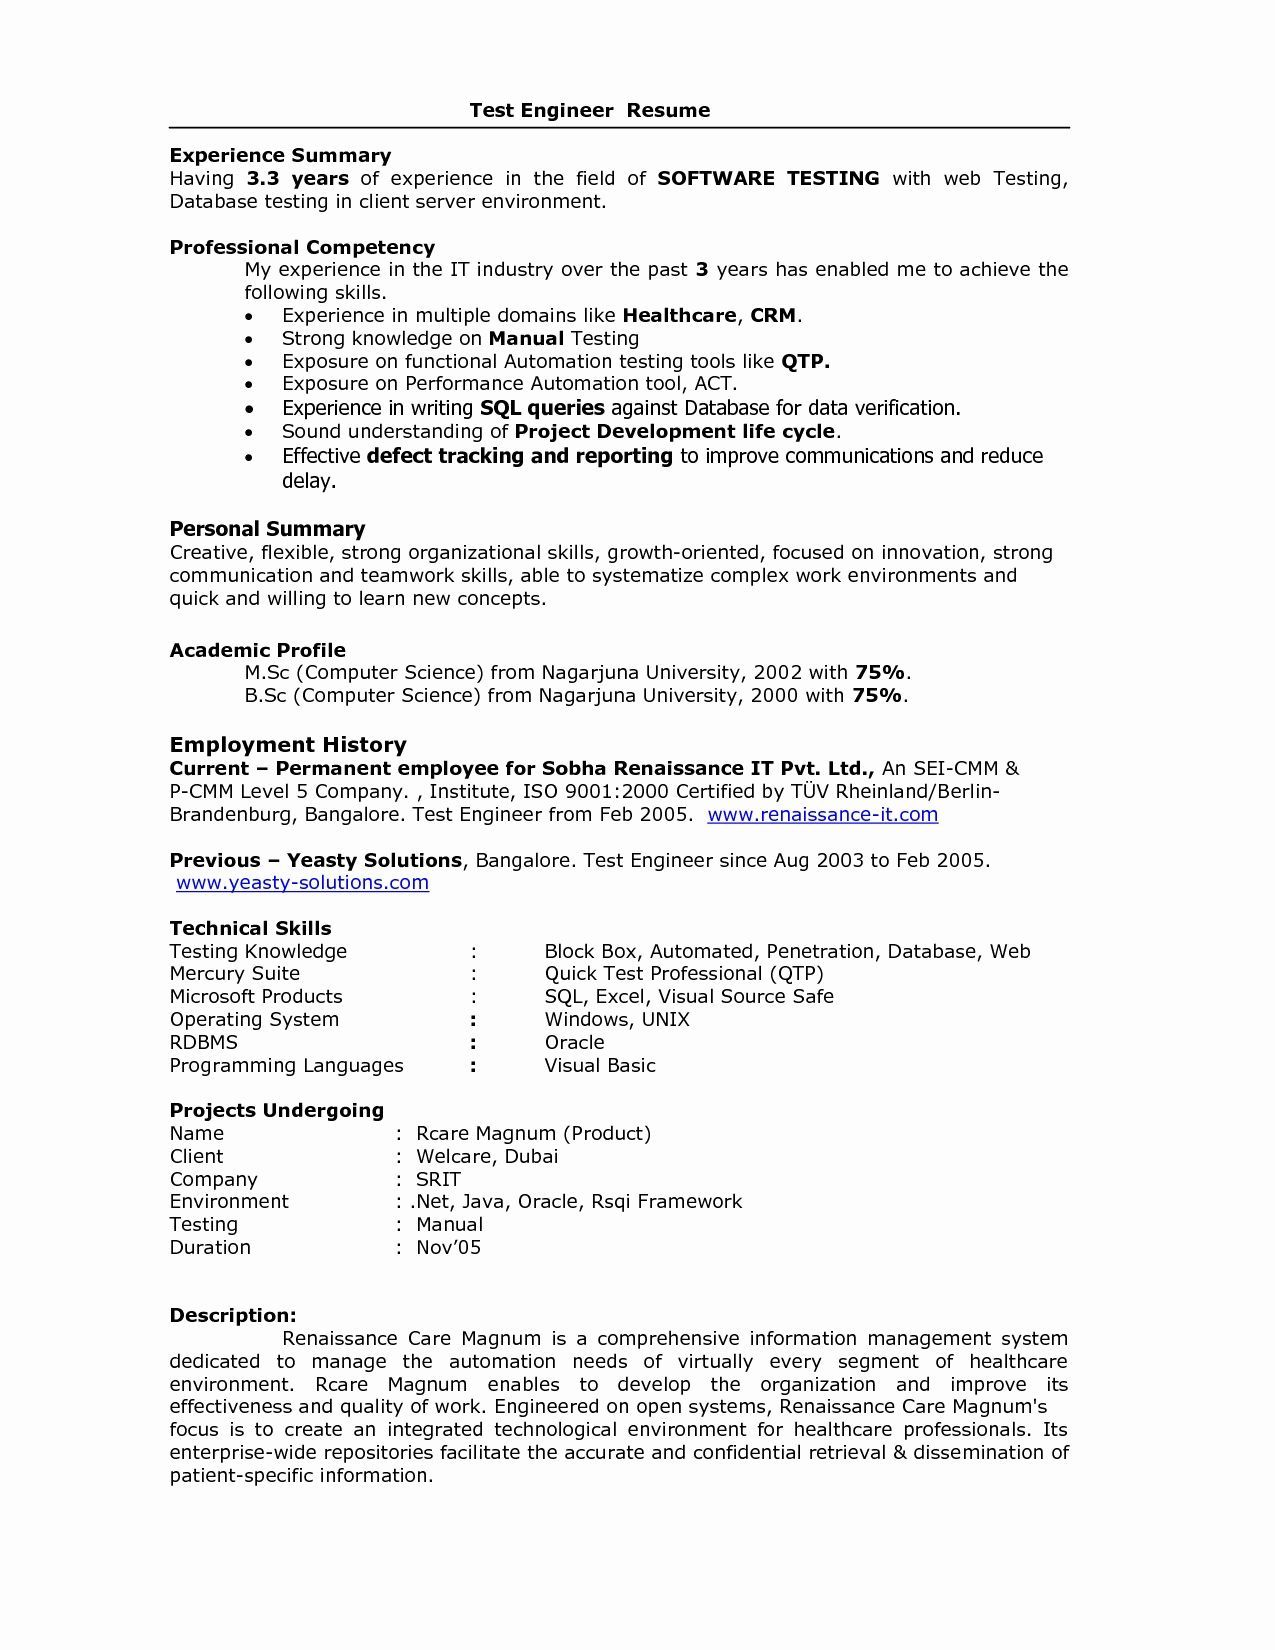 resume format for years experience in testing best software sample engineer project Resume Resume Format For Testing Engineer